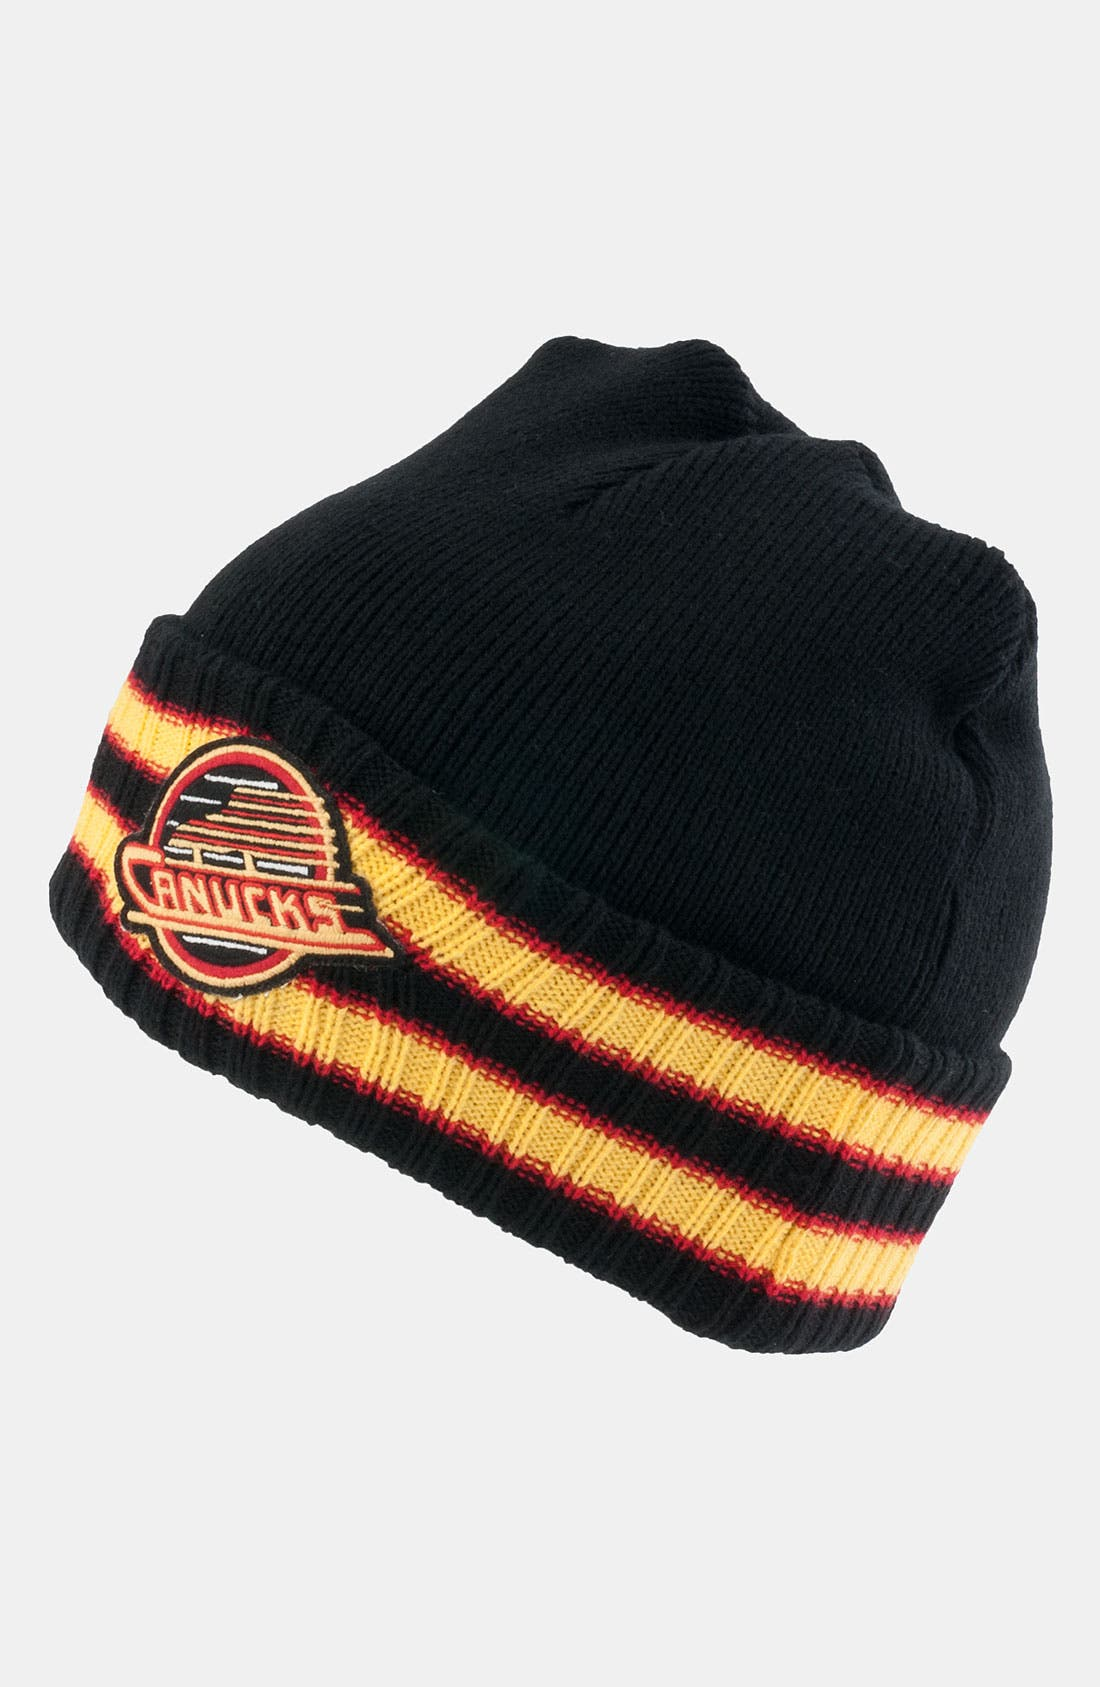 Alternate Image 1 Selected - American Needle 'Vancouver Canucks - Slash' Knit Hat